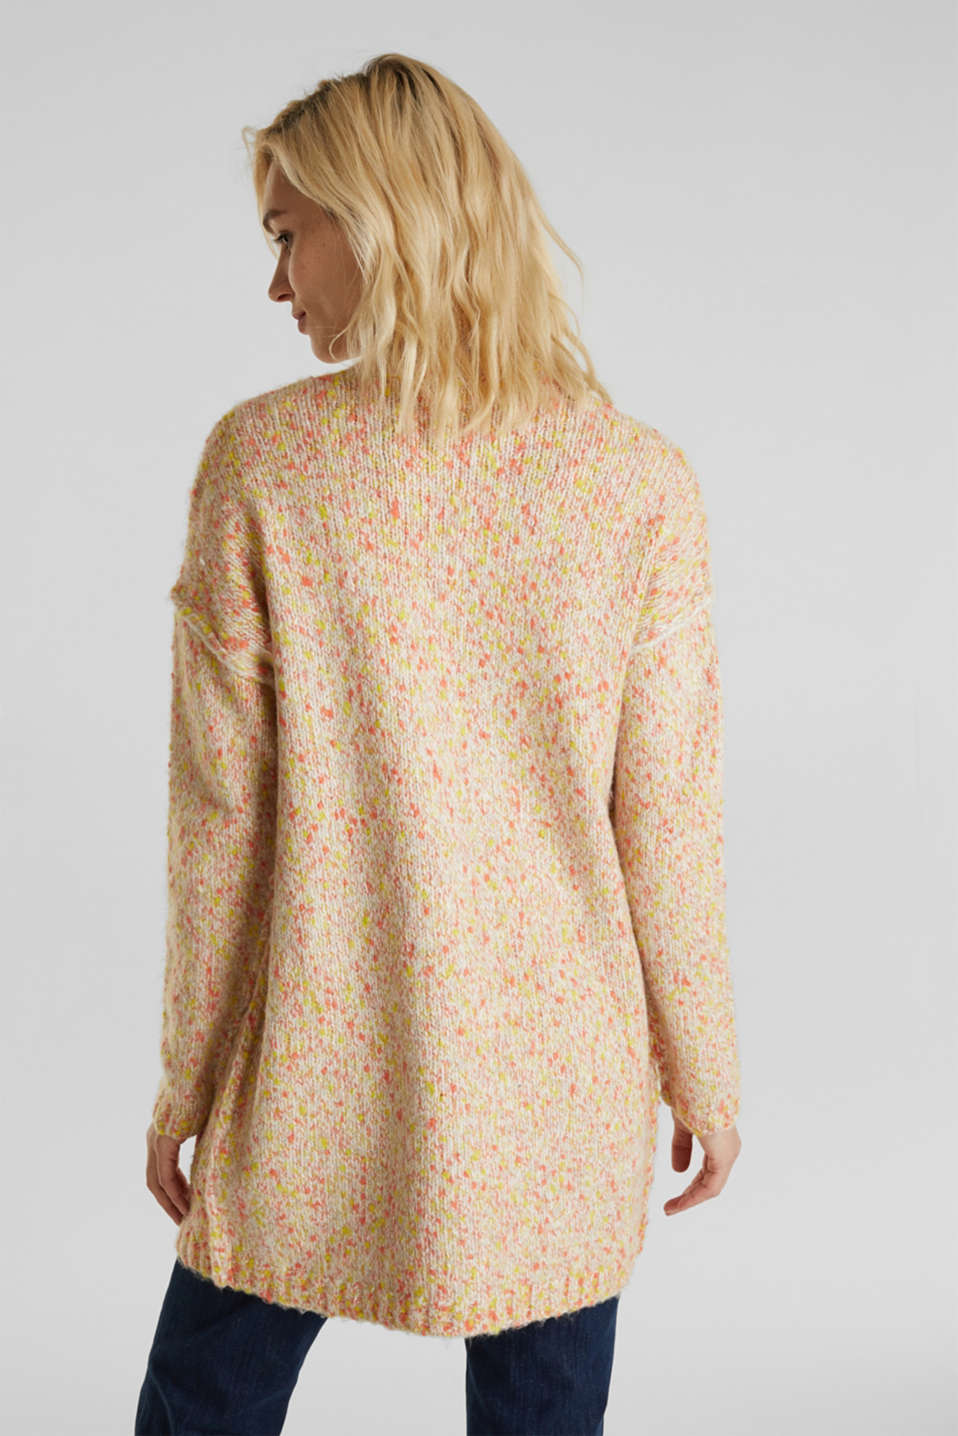 Wool blend: Cardigan with a dimpled texture, BEIGE, detail image number 2